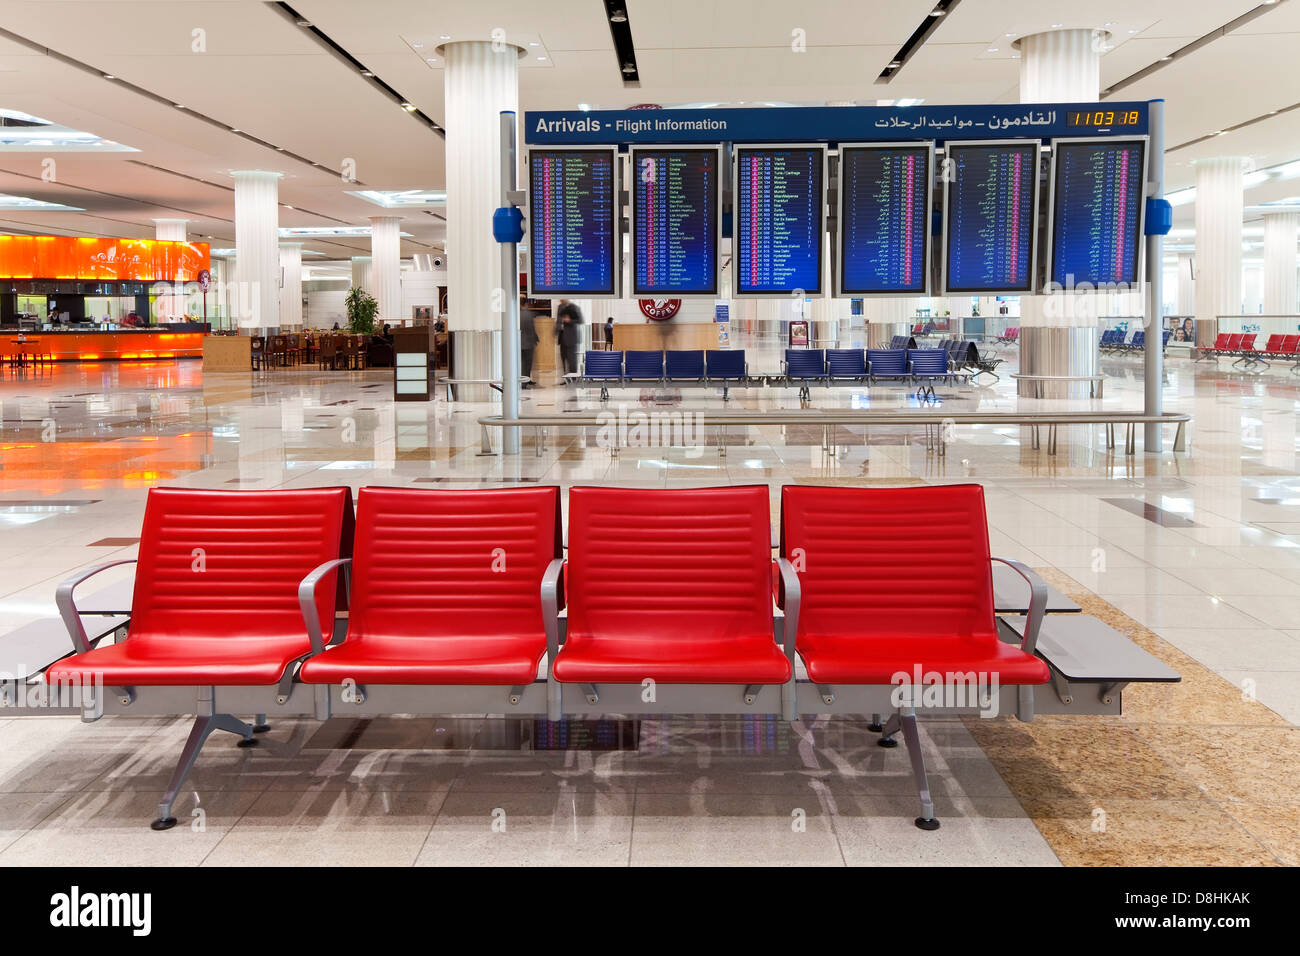 UAE, Vereinigte Arabische Emirate, Dubai, Dubai International Airport, Terminal 3, Ankunftshalle Stockbild